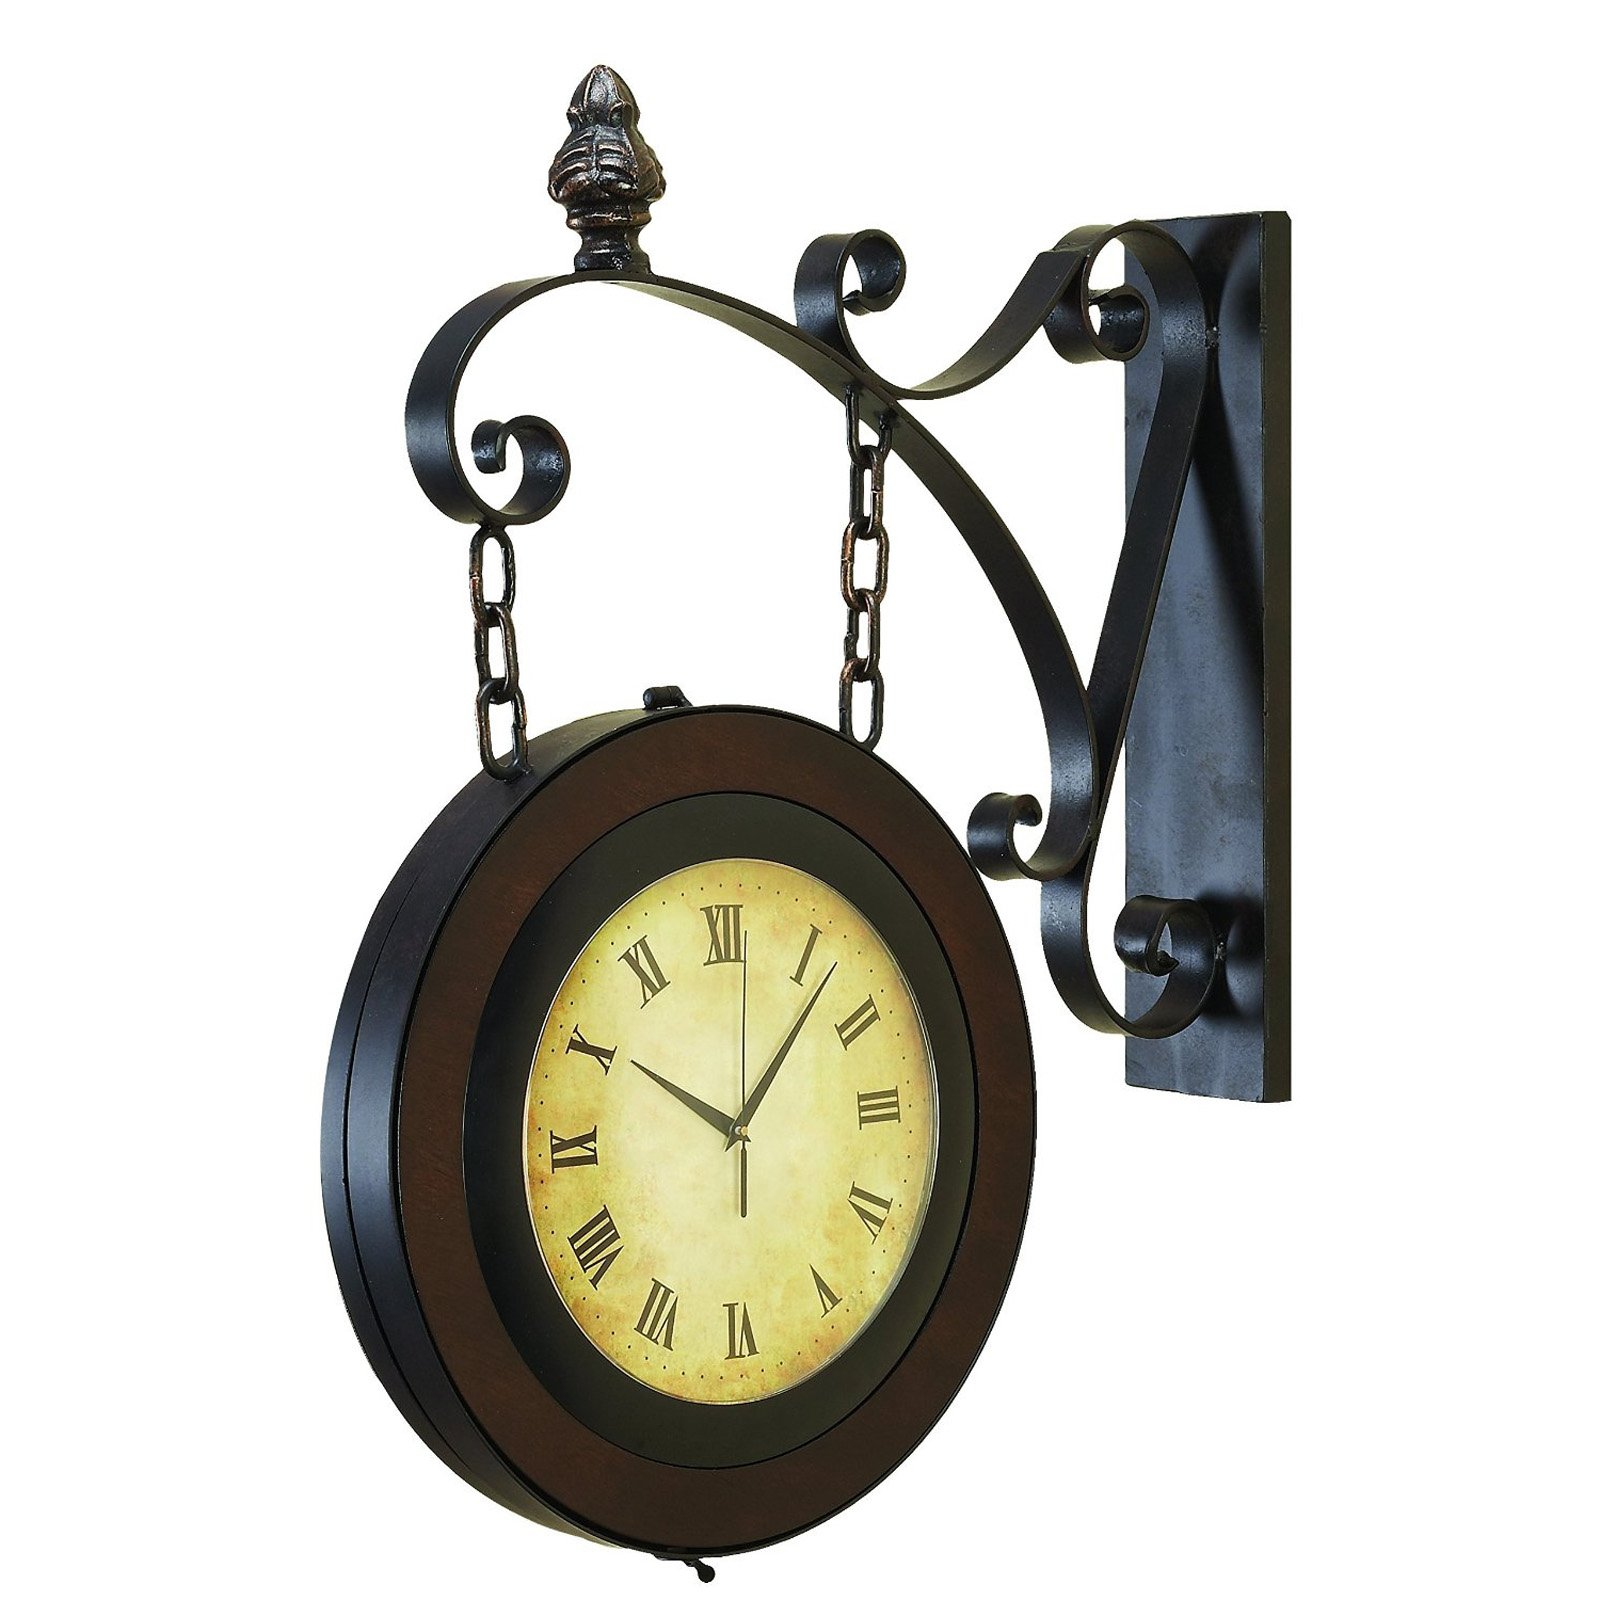 EcWorld Enterprises 7780433 Large Handcrafted Metal Hanging Double Face Clock by ecWorld